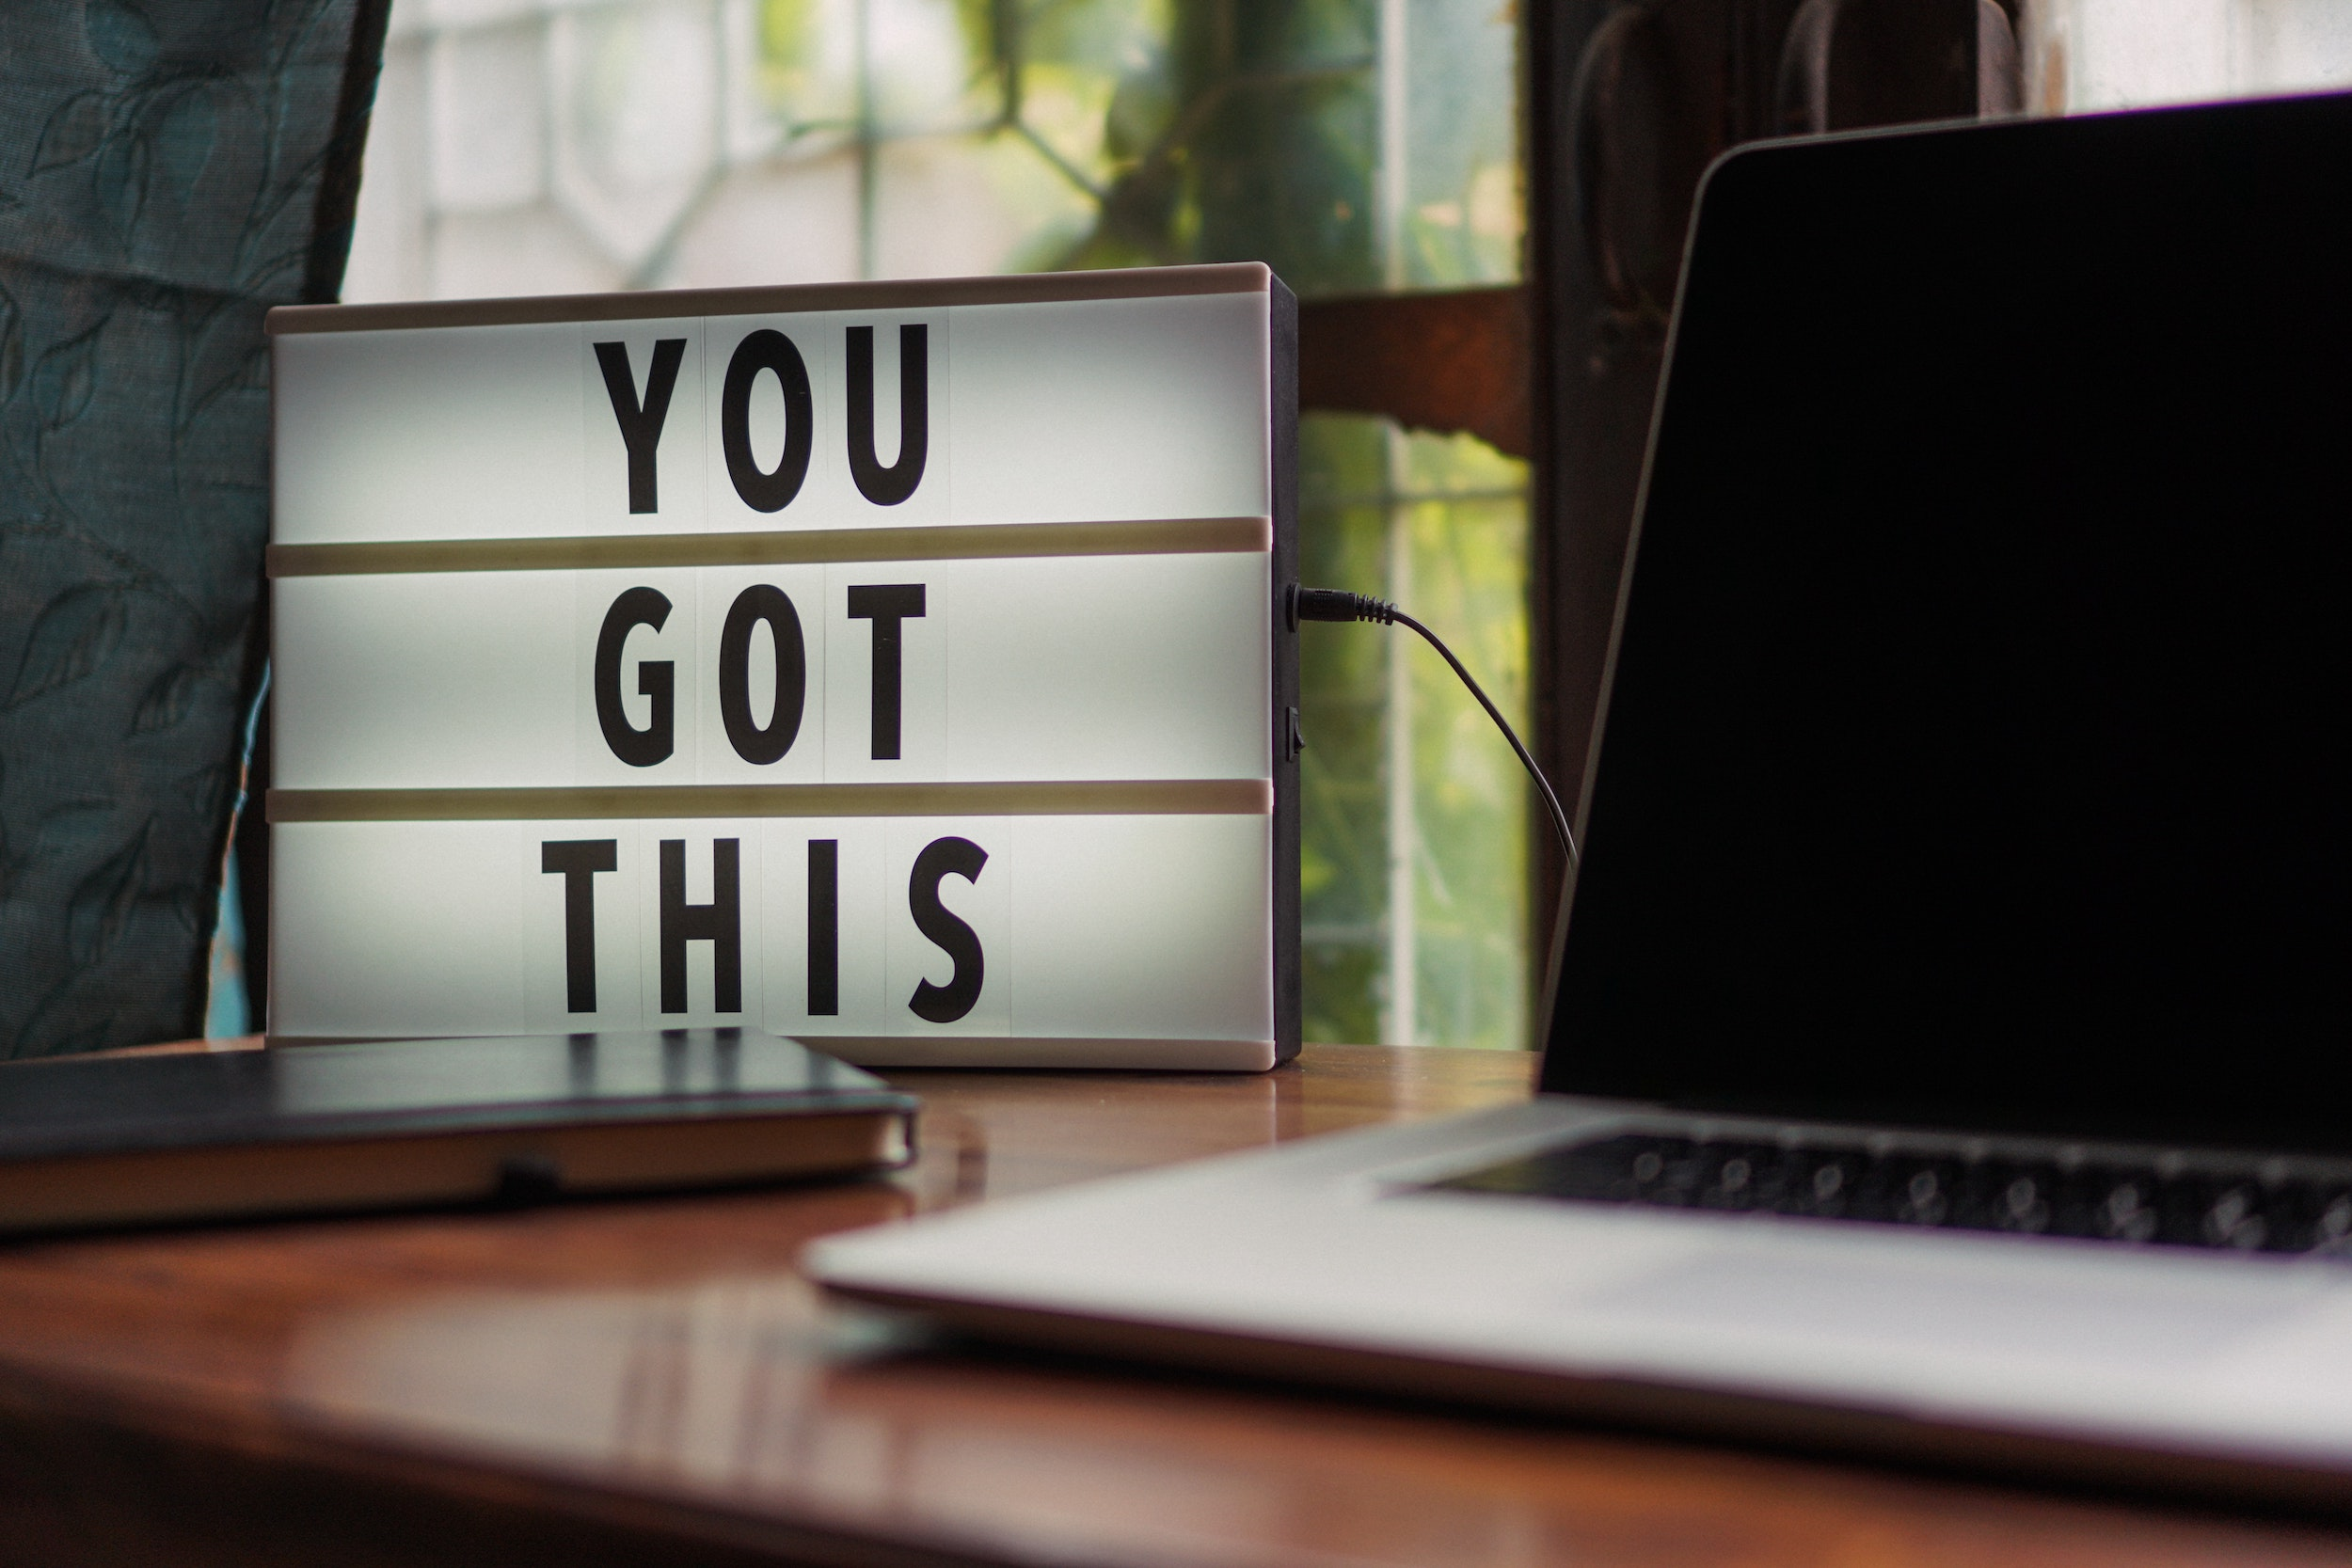 """A lightboard and laptop on a desk. The lightboard has the words """"You Got This"""". Photo by Prateek Katyal from Pexels"""